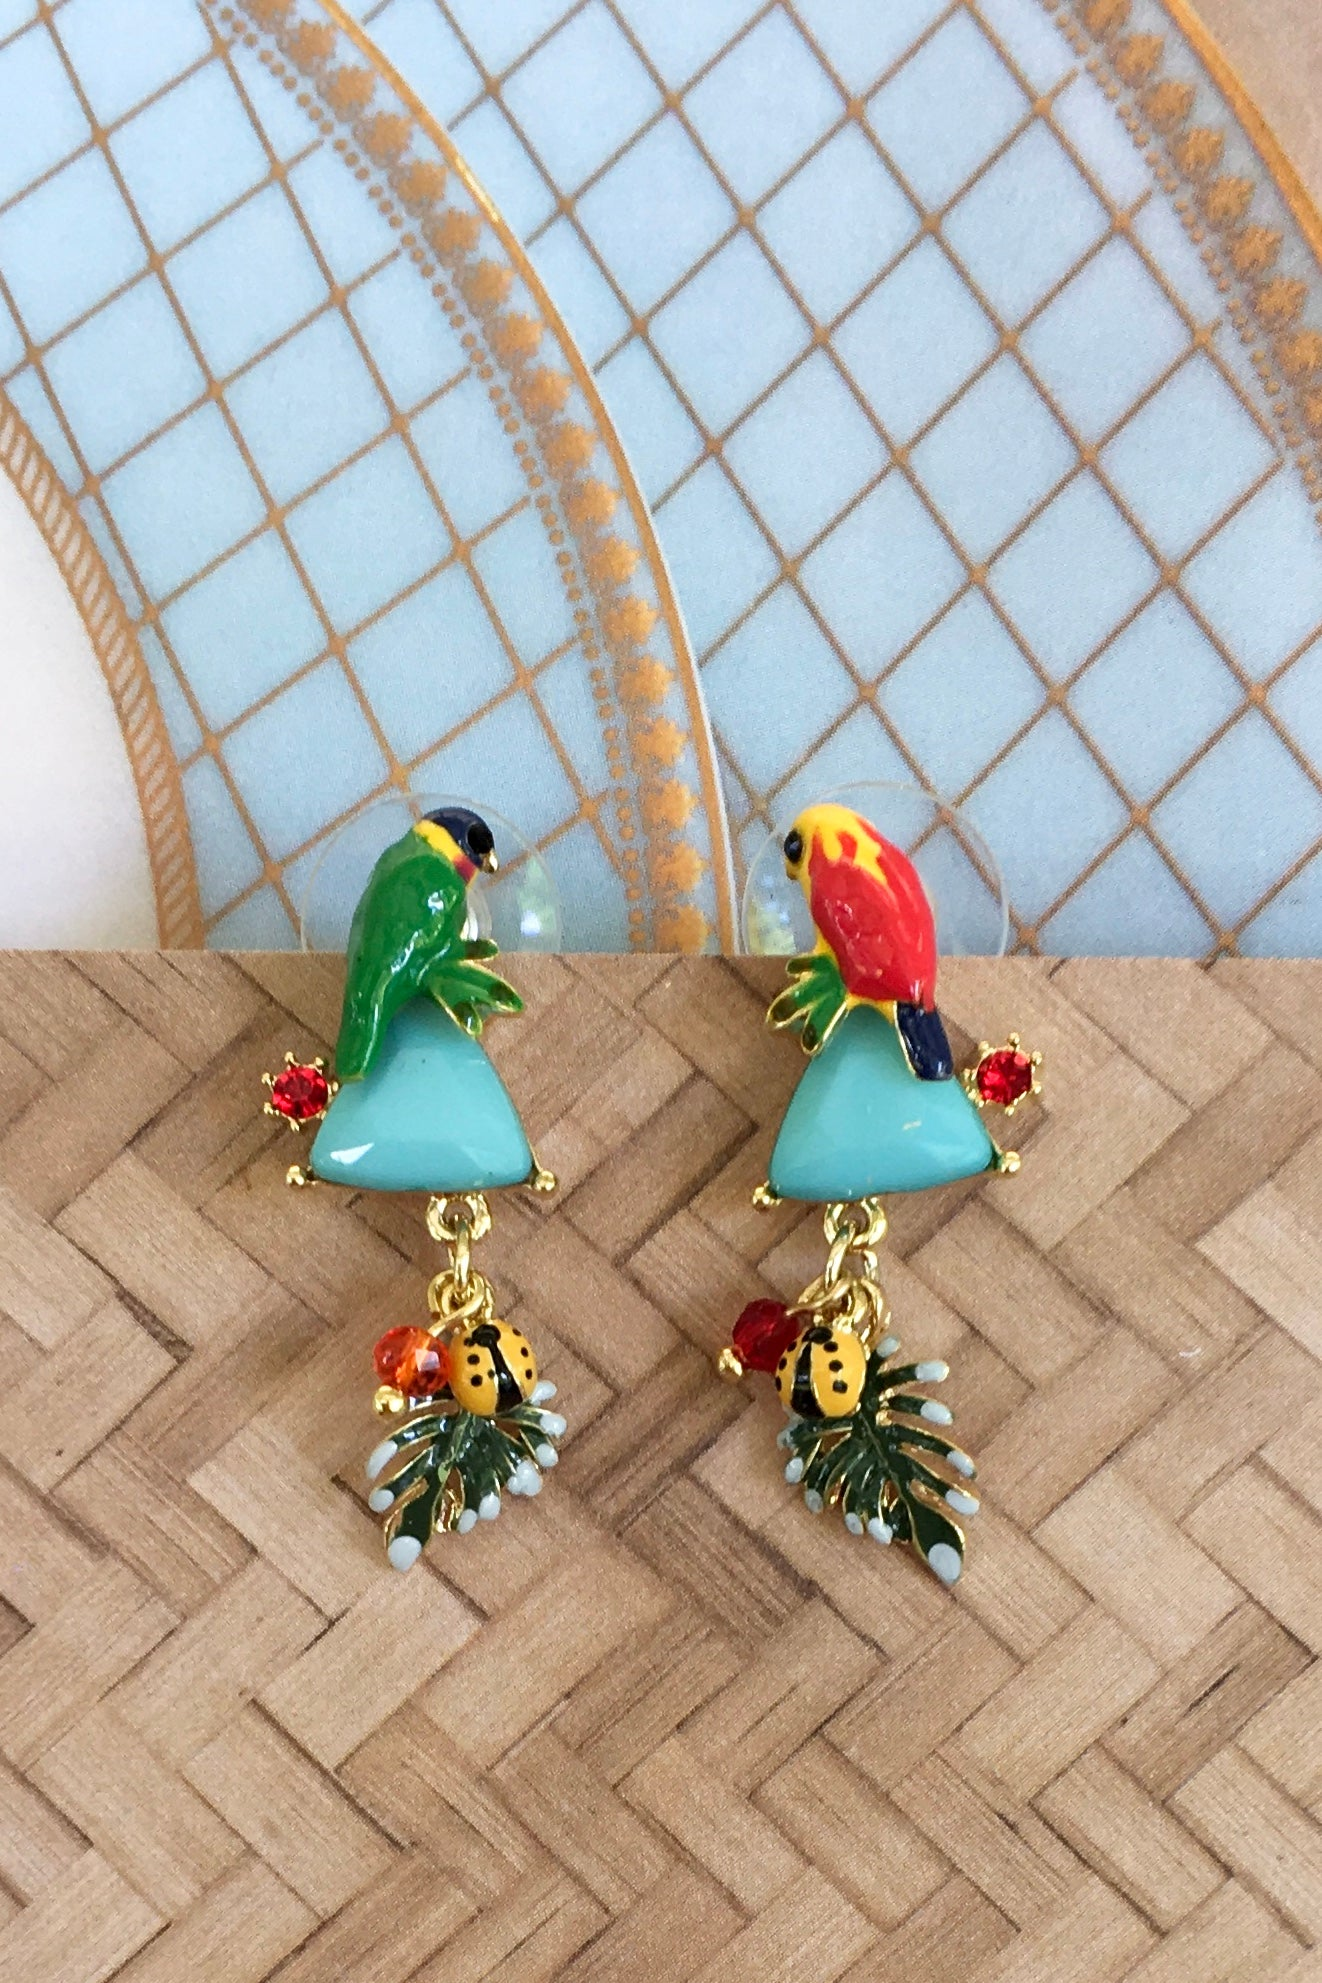 Earrings Secret Garden, enamel flower and bird earrings, bird style jewellery, garden style earrings for summer